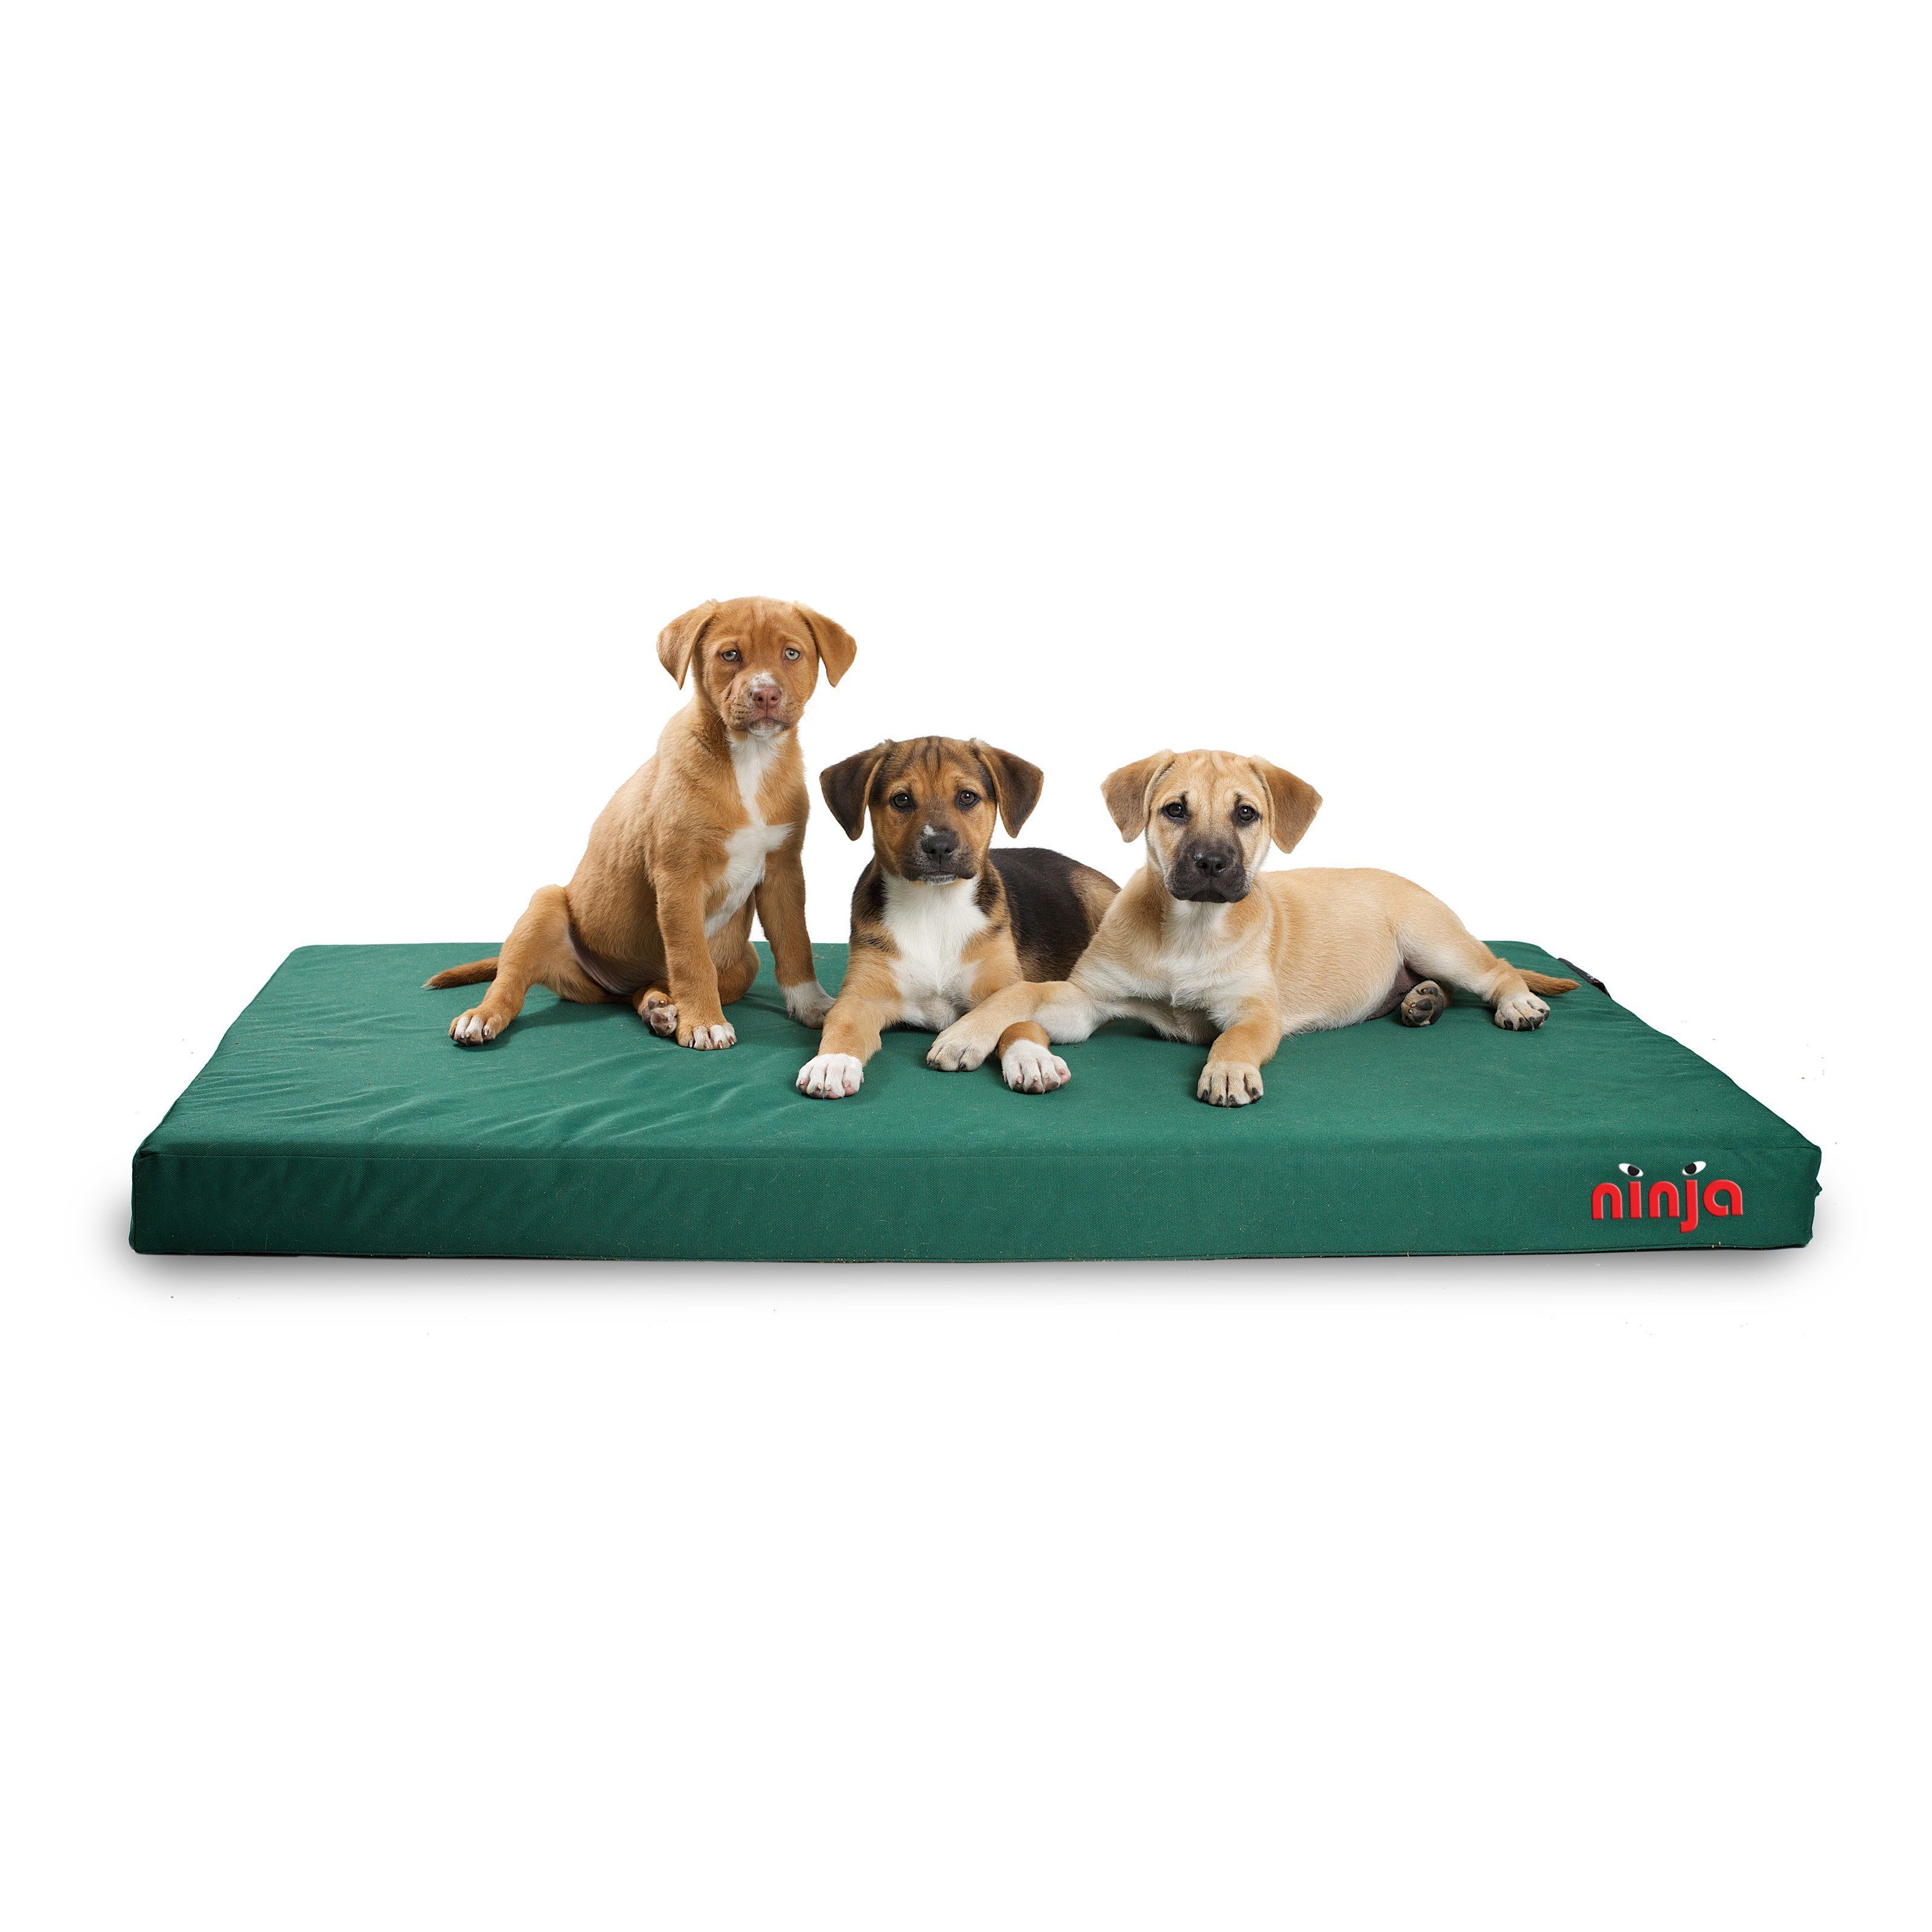 Dog Gone Smart Ninja Bed from Dogs, Pet